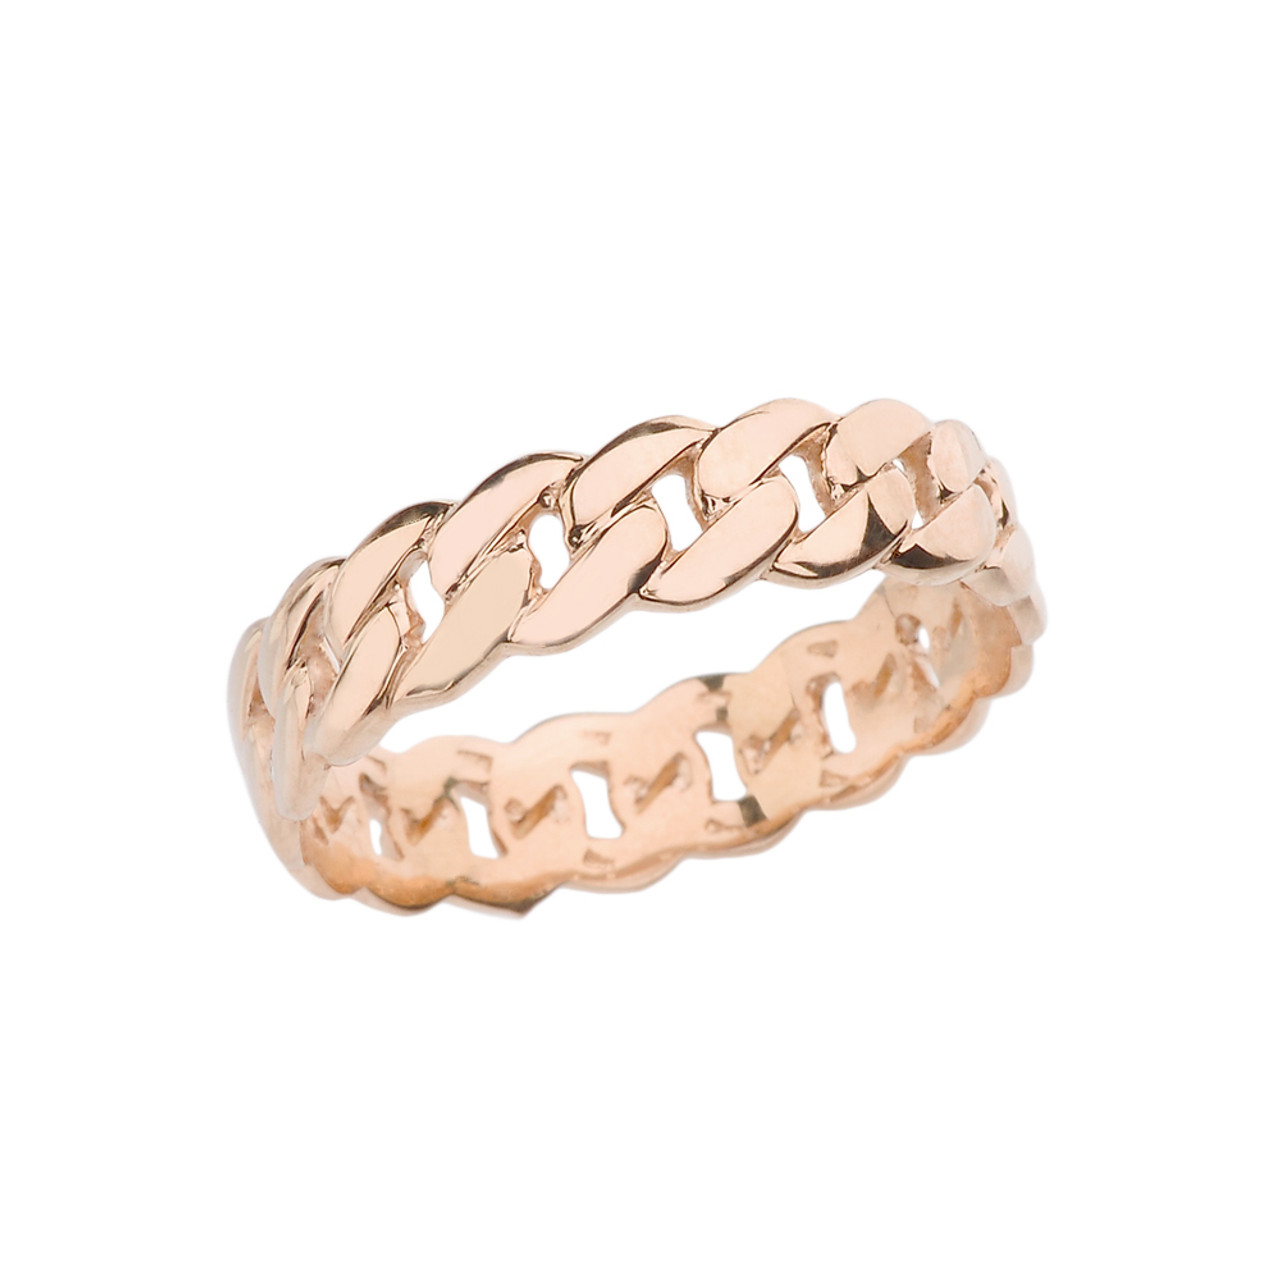 mv gold expand ring click kay rose kaystore ct eternity round cut en to diamond zm bands tw band